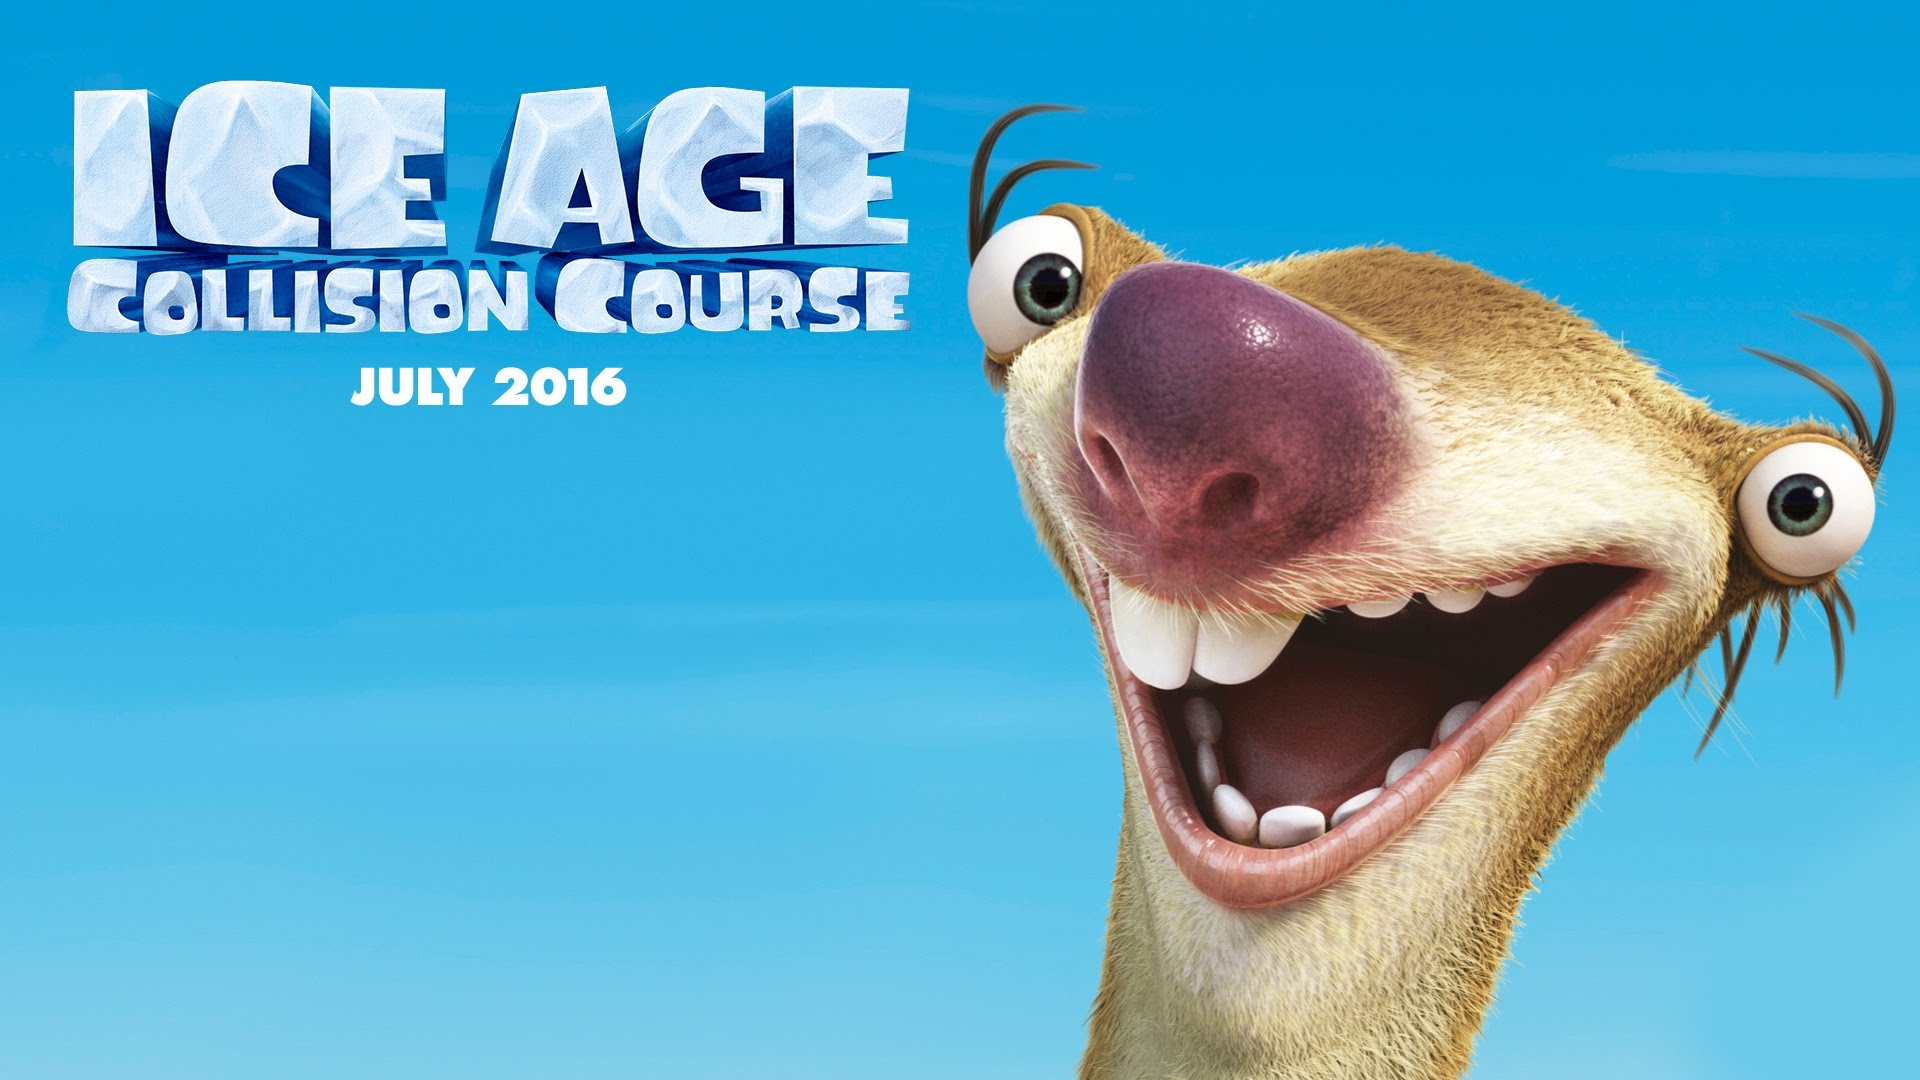 ice-age-collision-course-dangsid